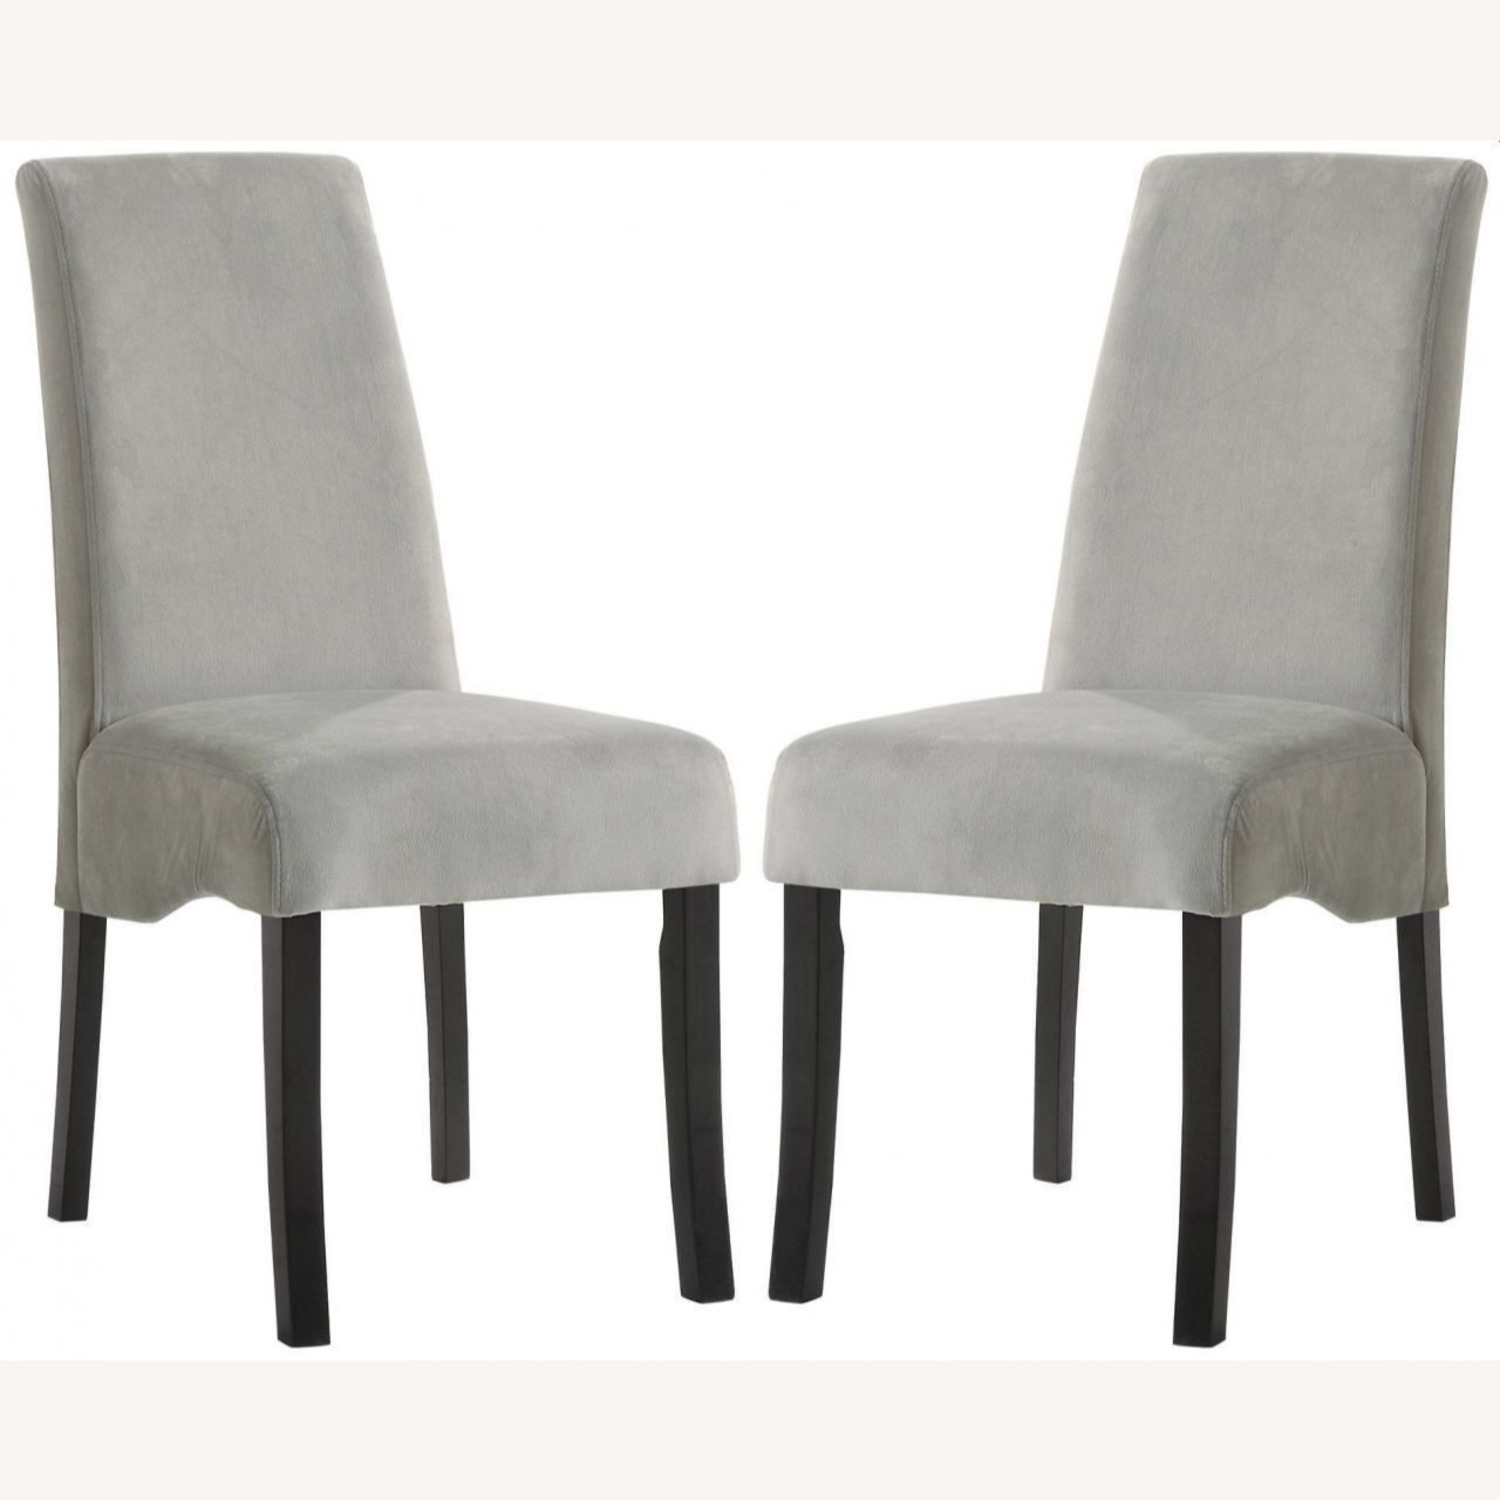 Elegant Side Chair In A Grey Fabric W Flared Back - image-1